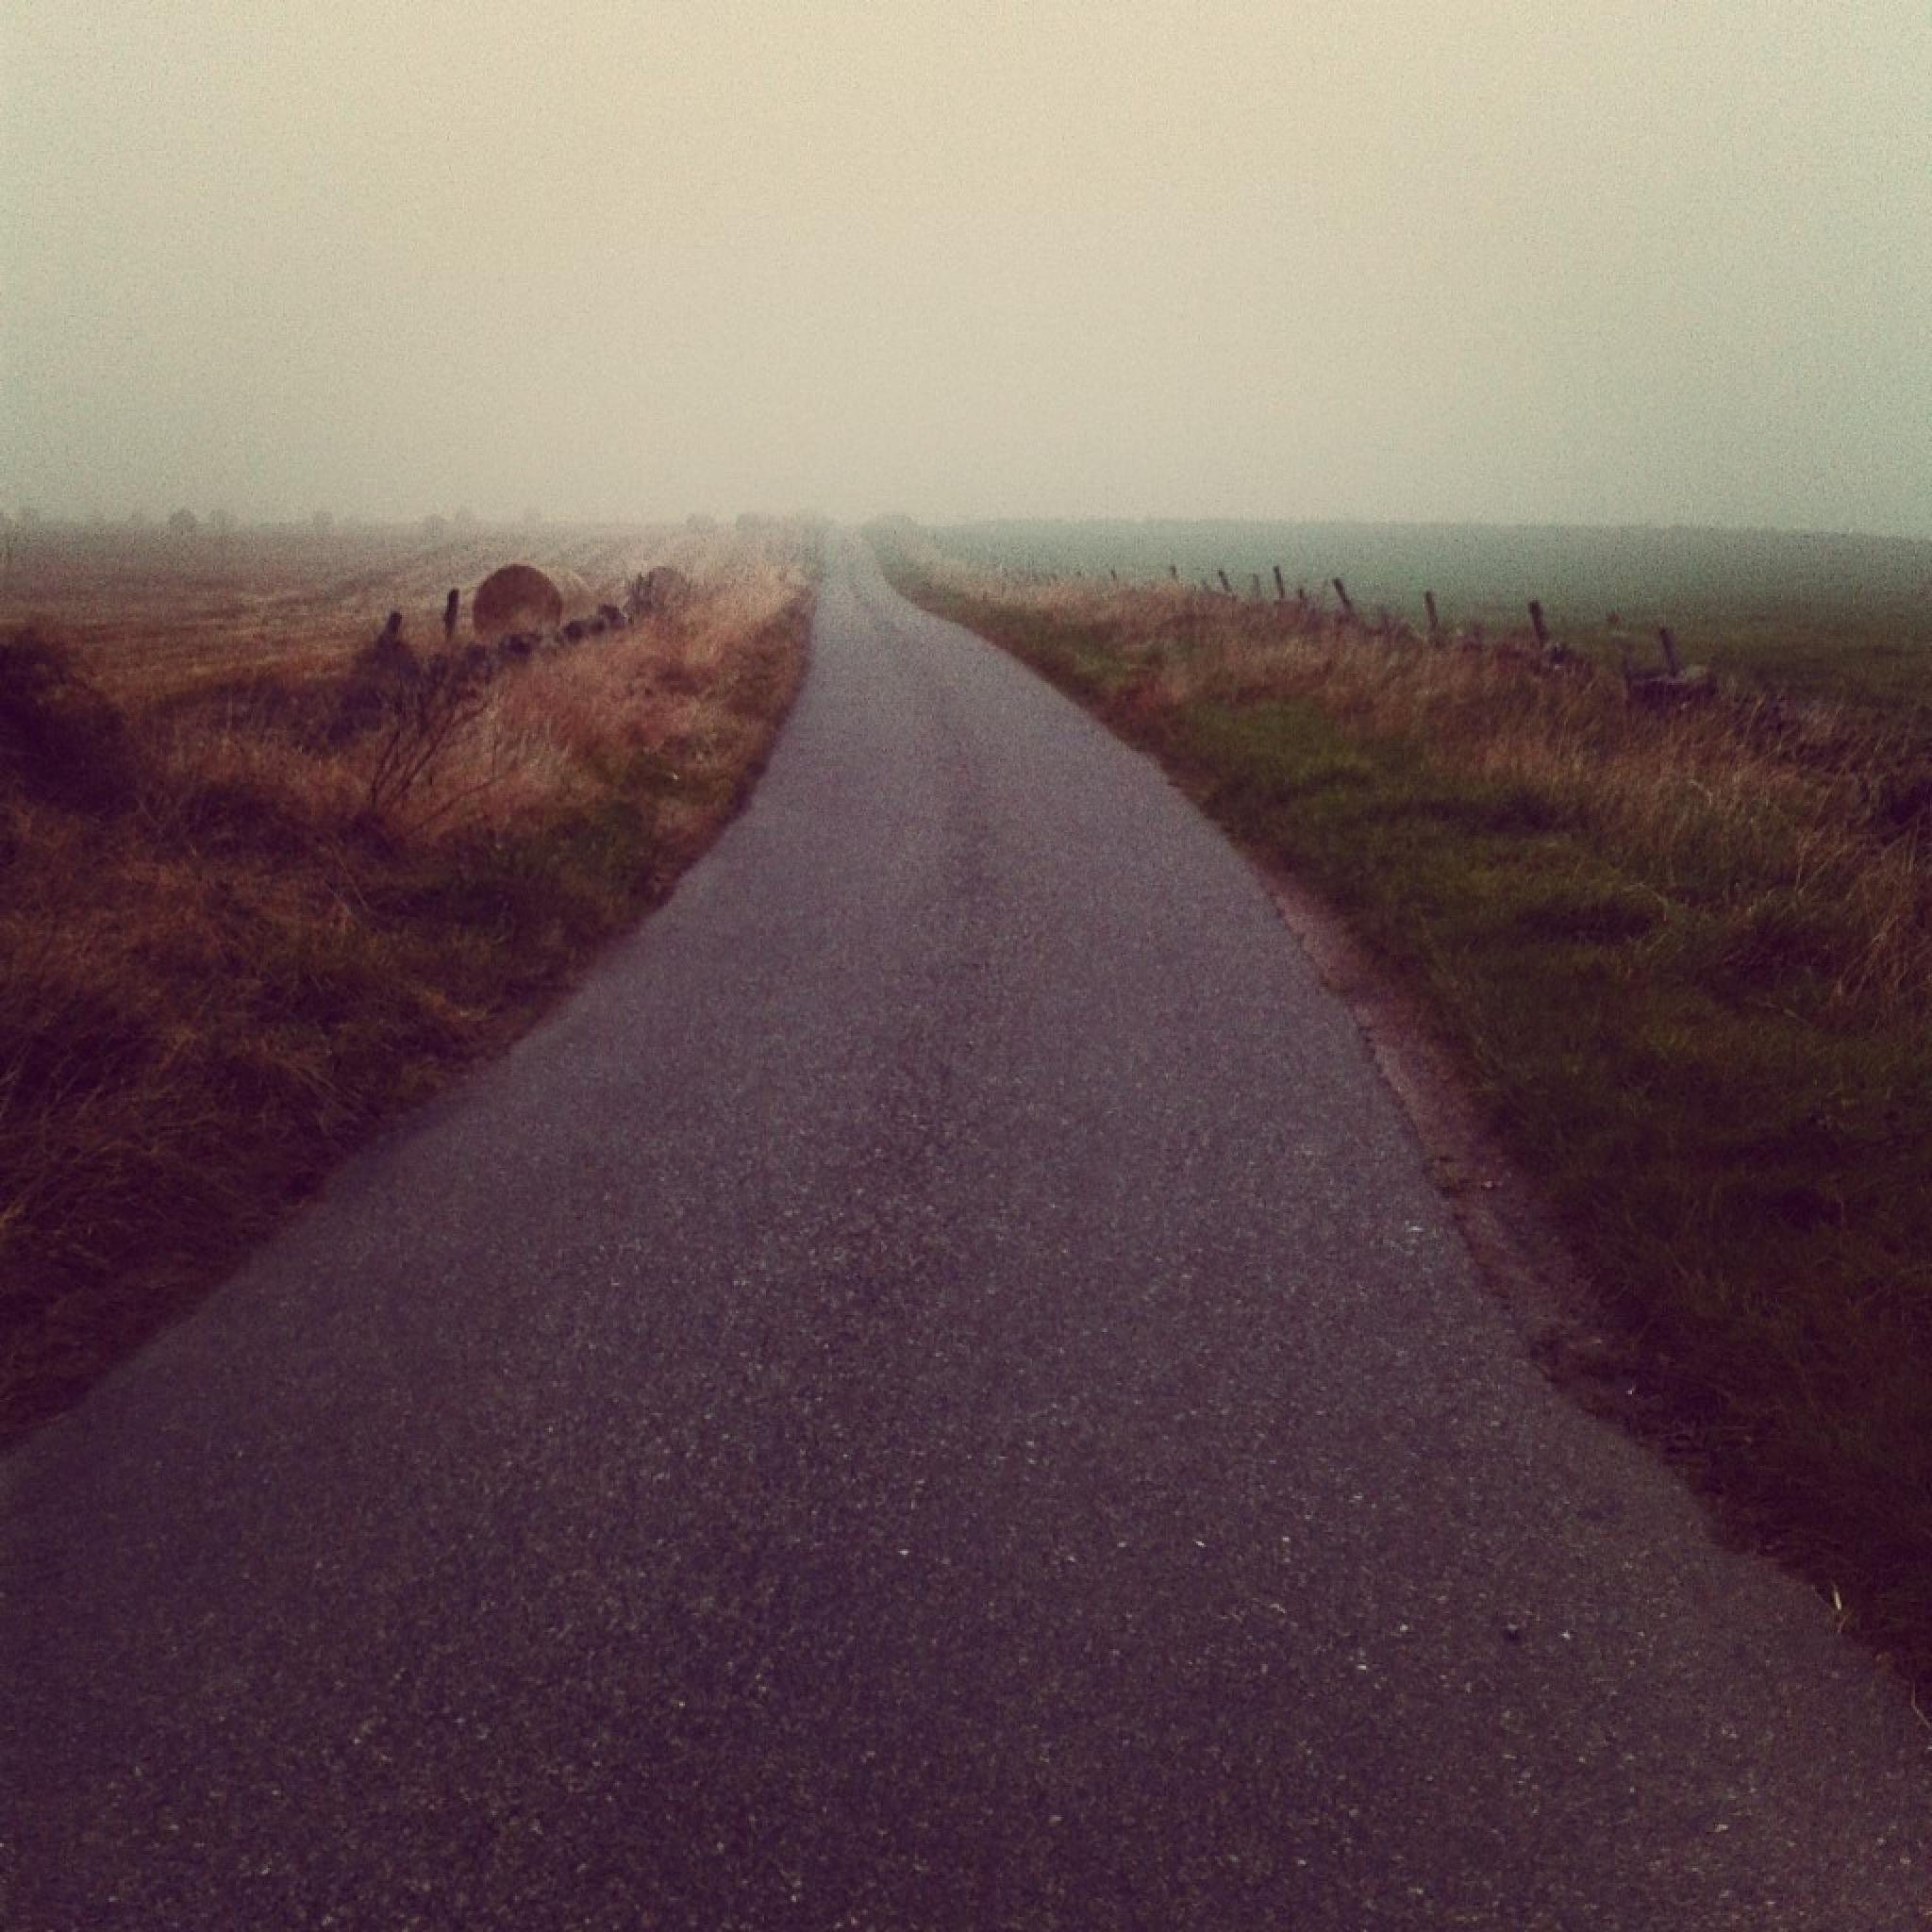 Country roads, take me home To the place I belong, ;) by kleszykmagda